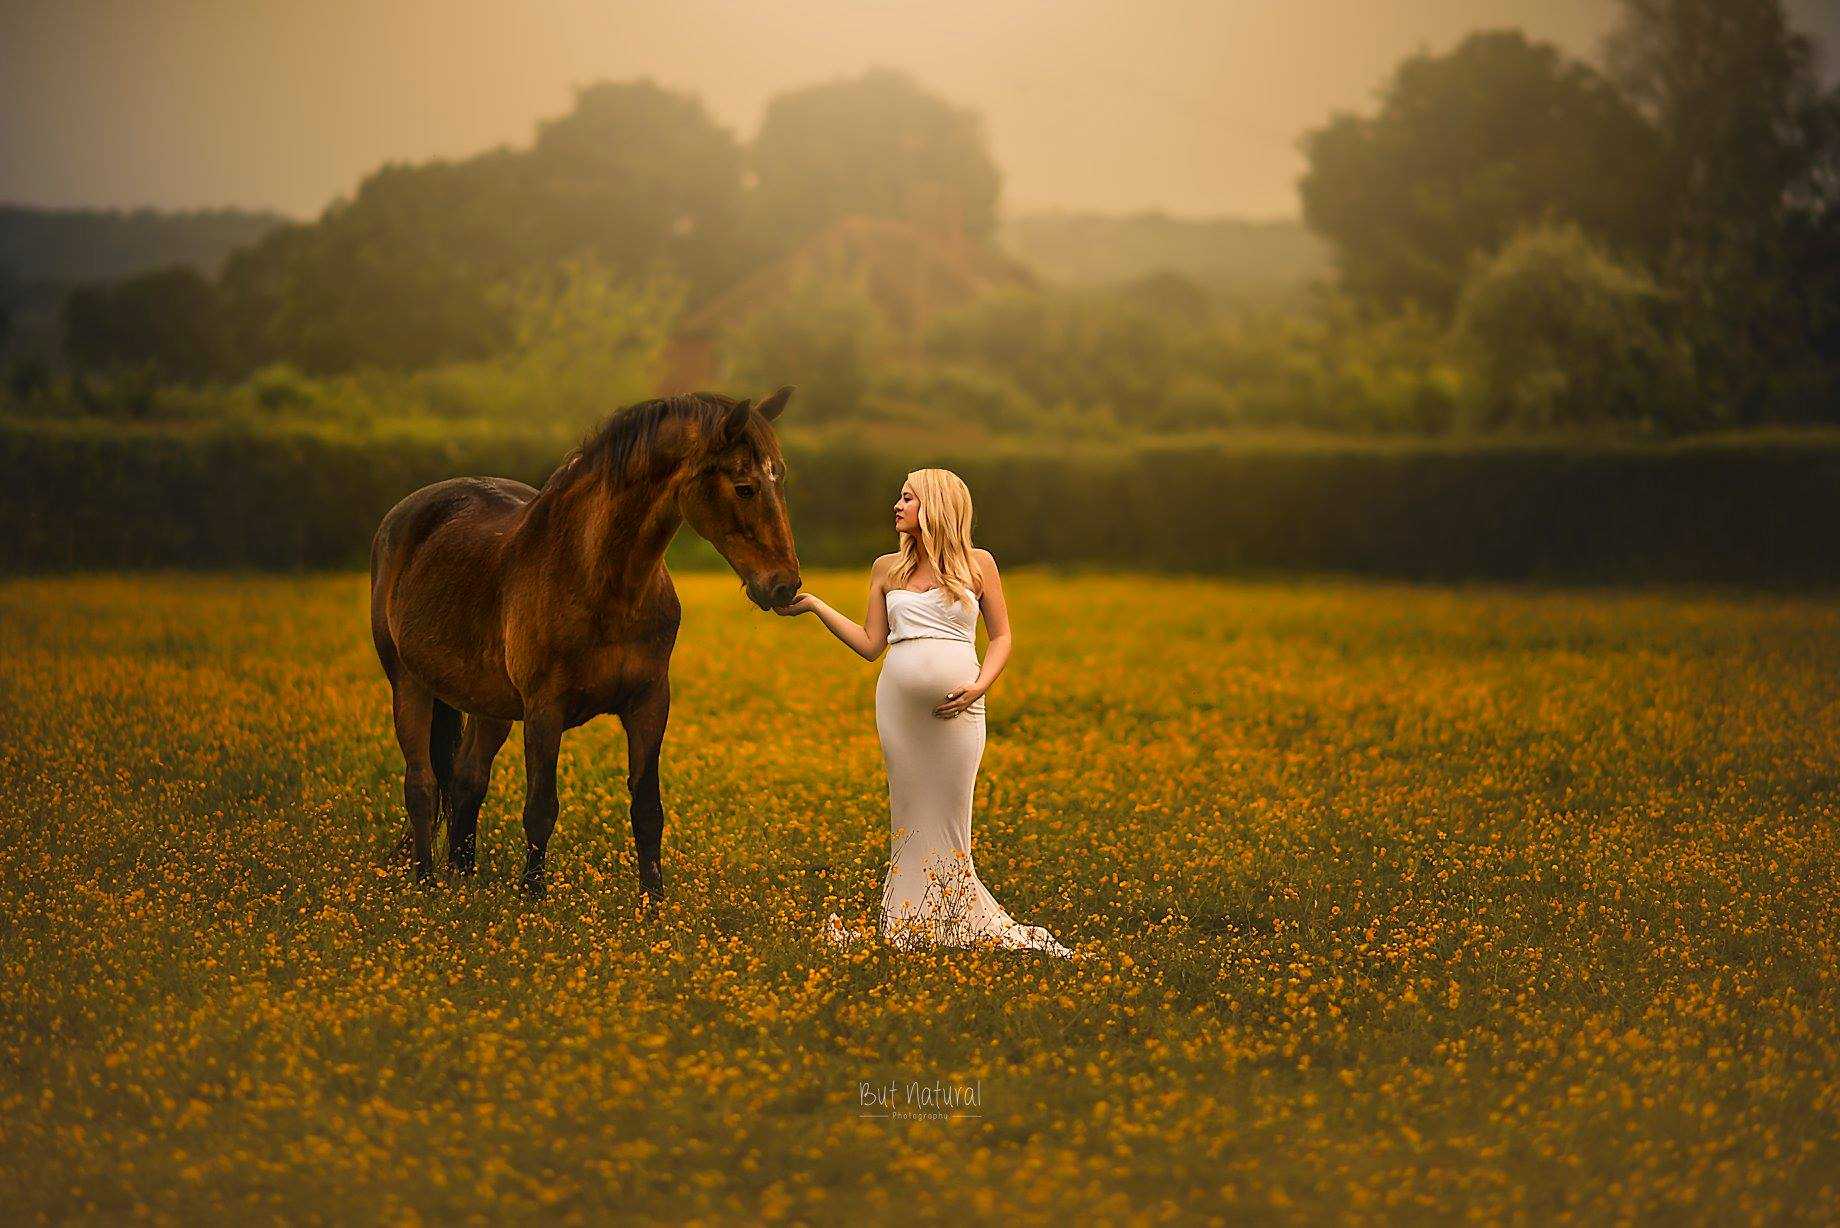 ideas for what to wear for maternity photoshoot by Sujata Setia Pregnancy photographer based in London UK available worldwide